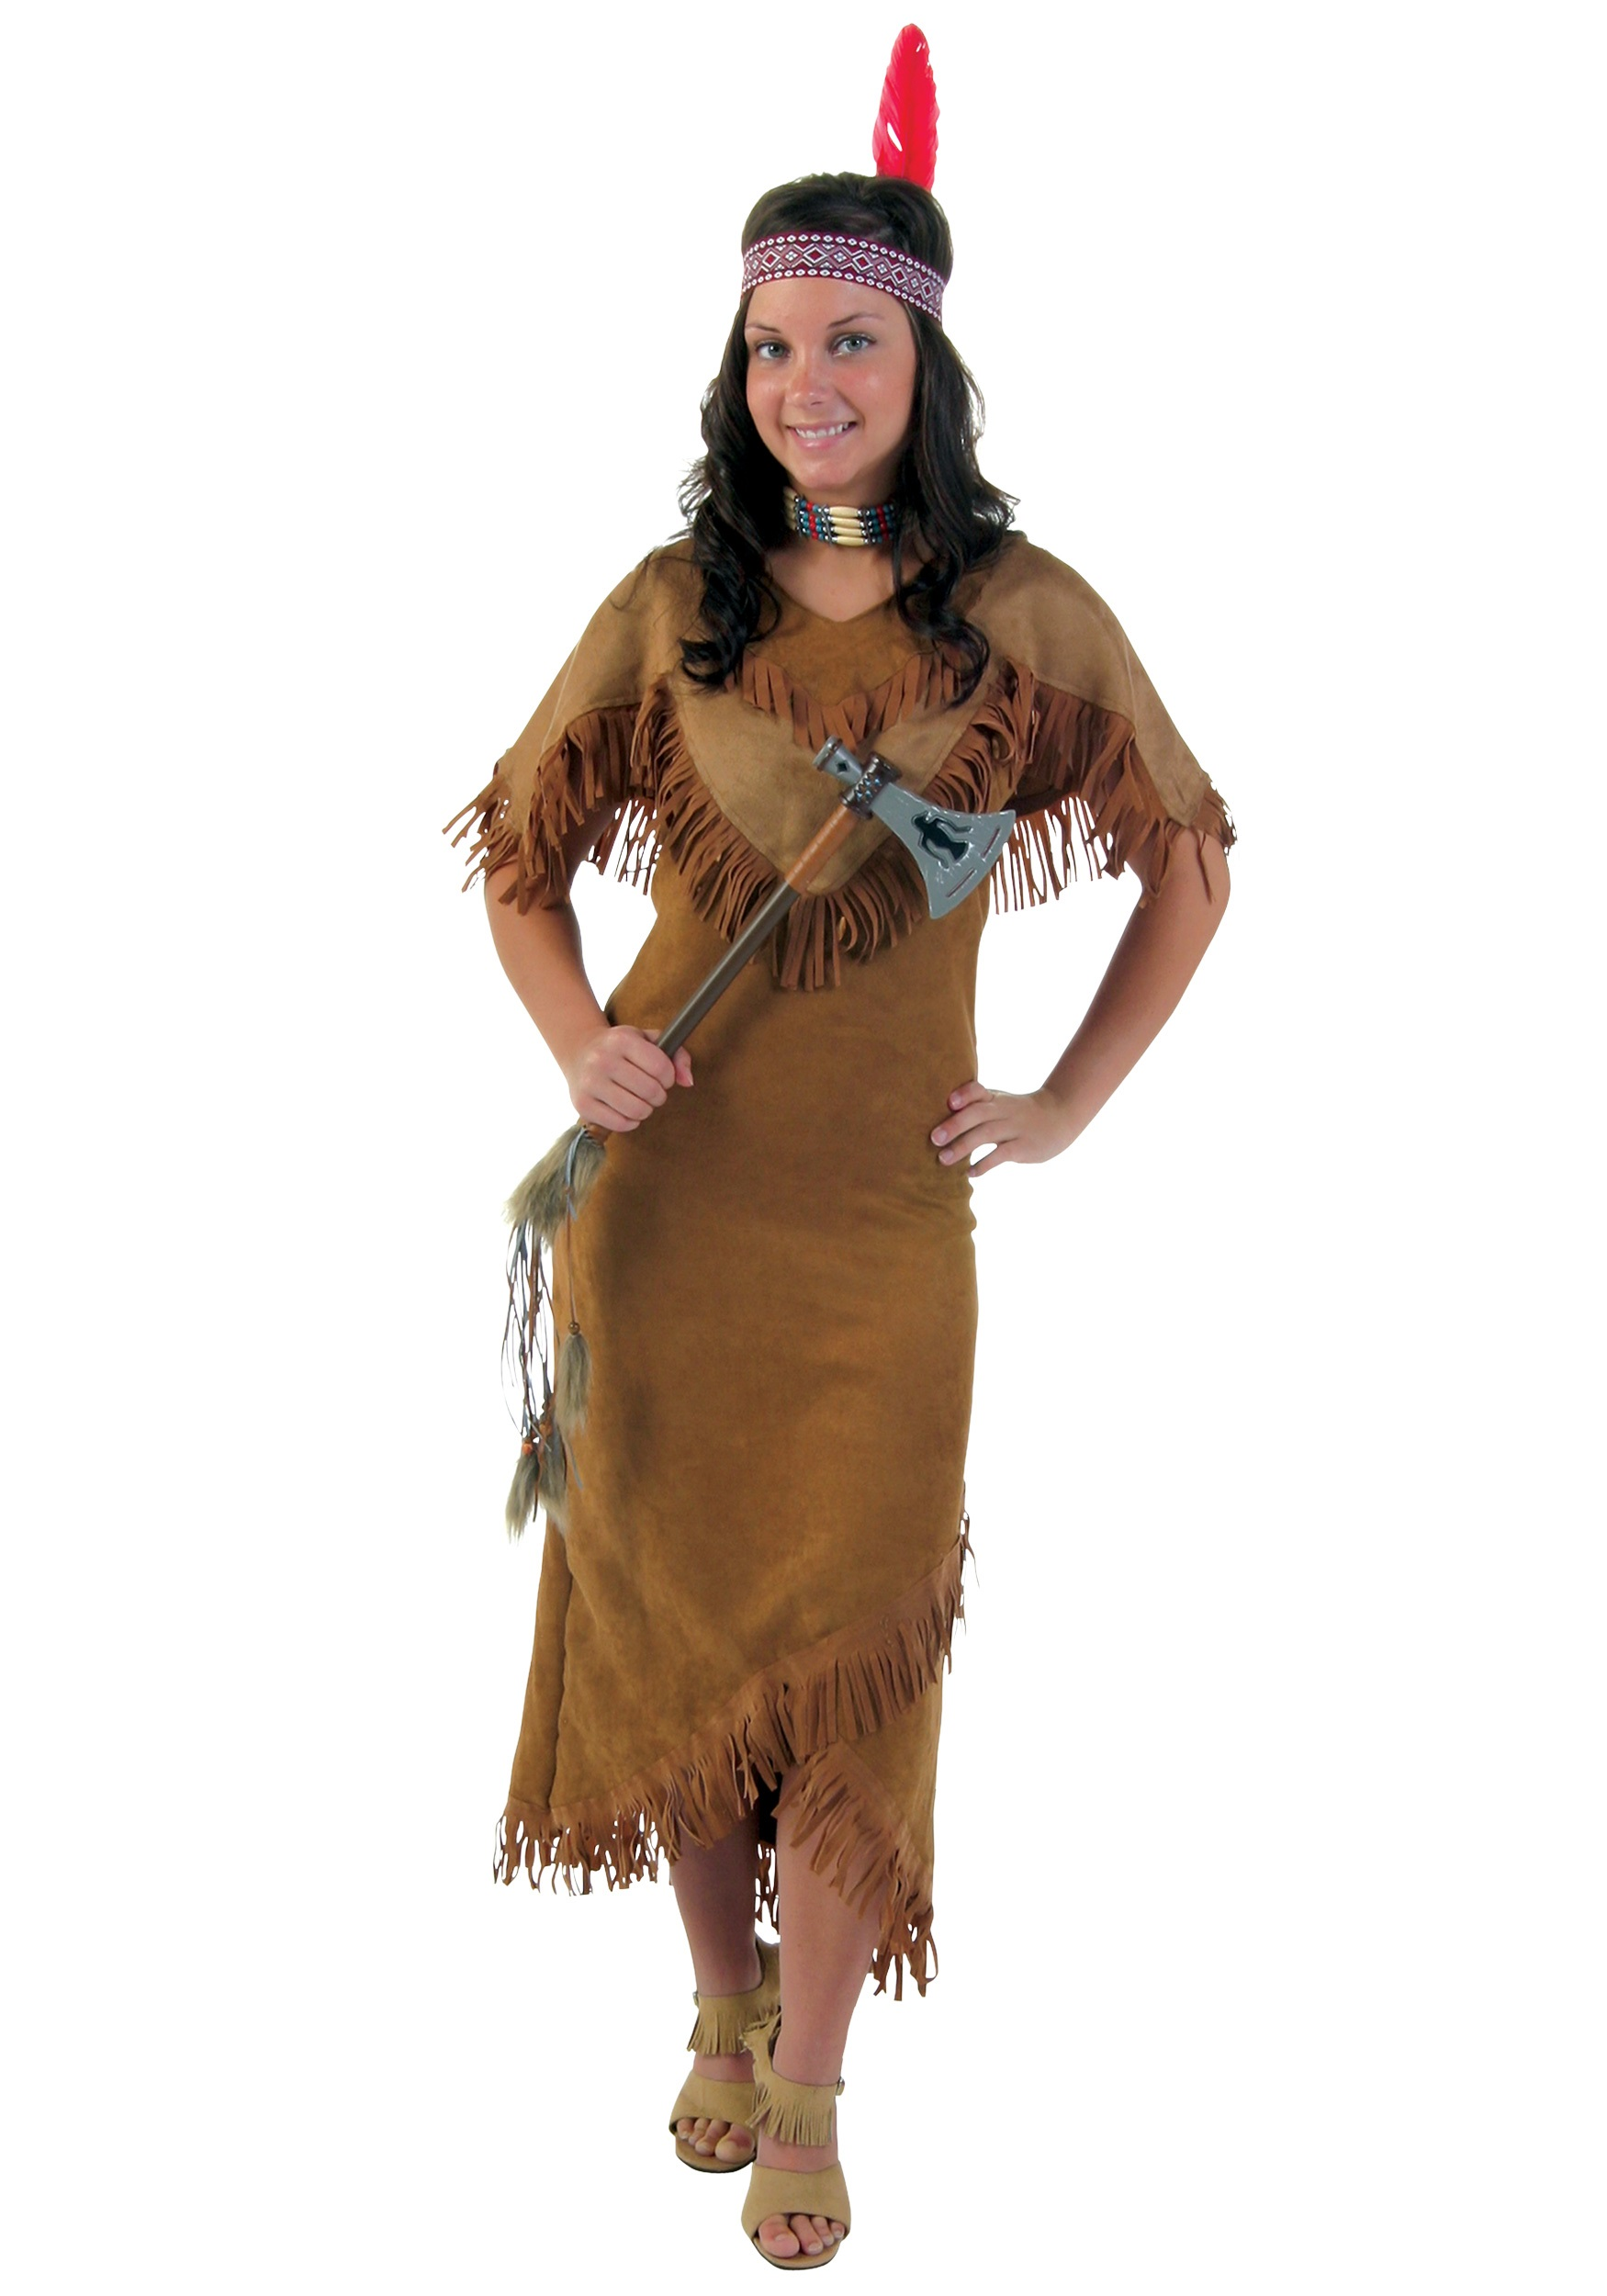 Womens Indian Costume Deluxe  sc 1 st  Halloween Costume & Womenu0027s Deluxe Indian Costume - Adult Female Native American Costumes